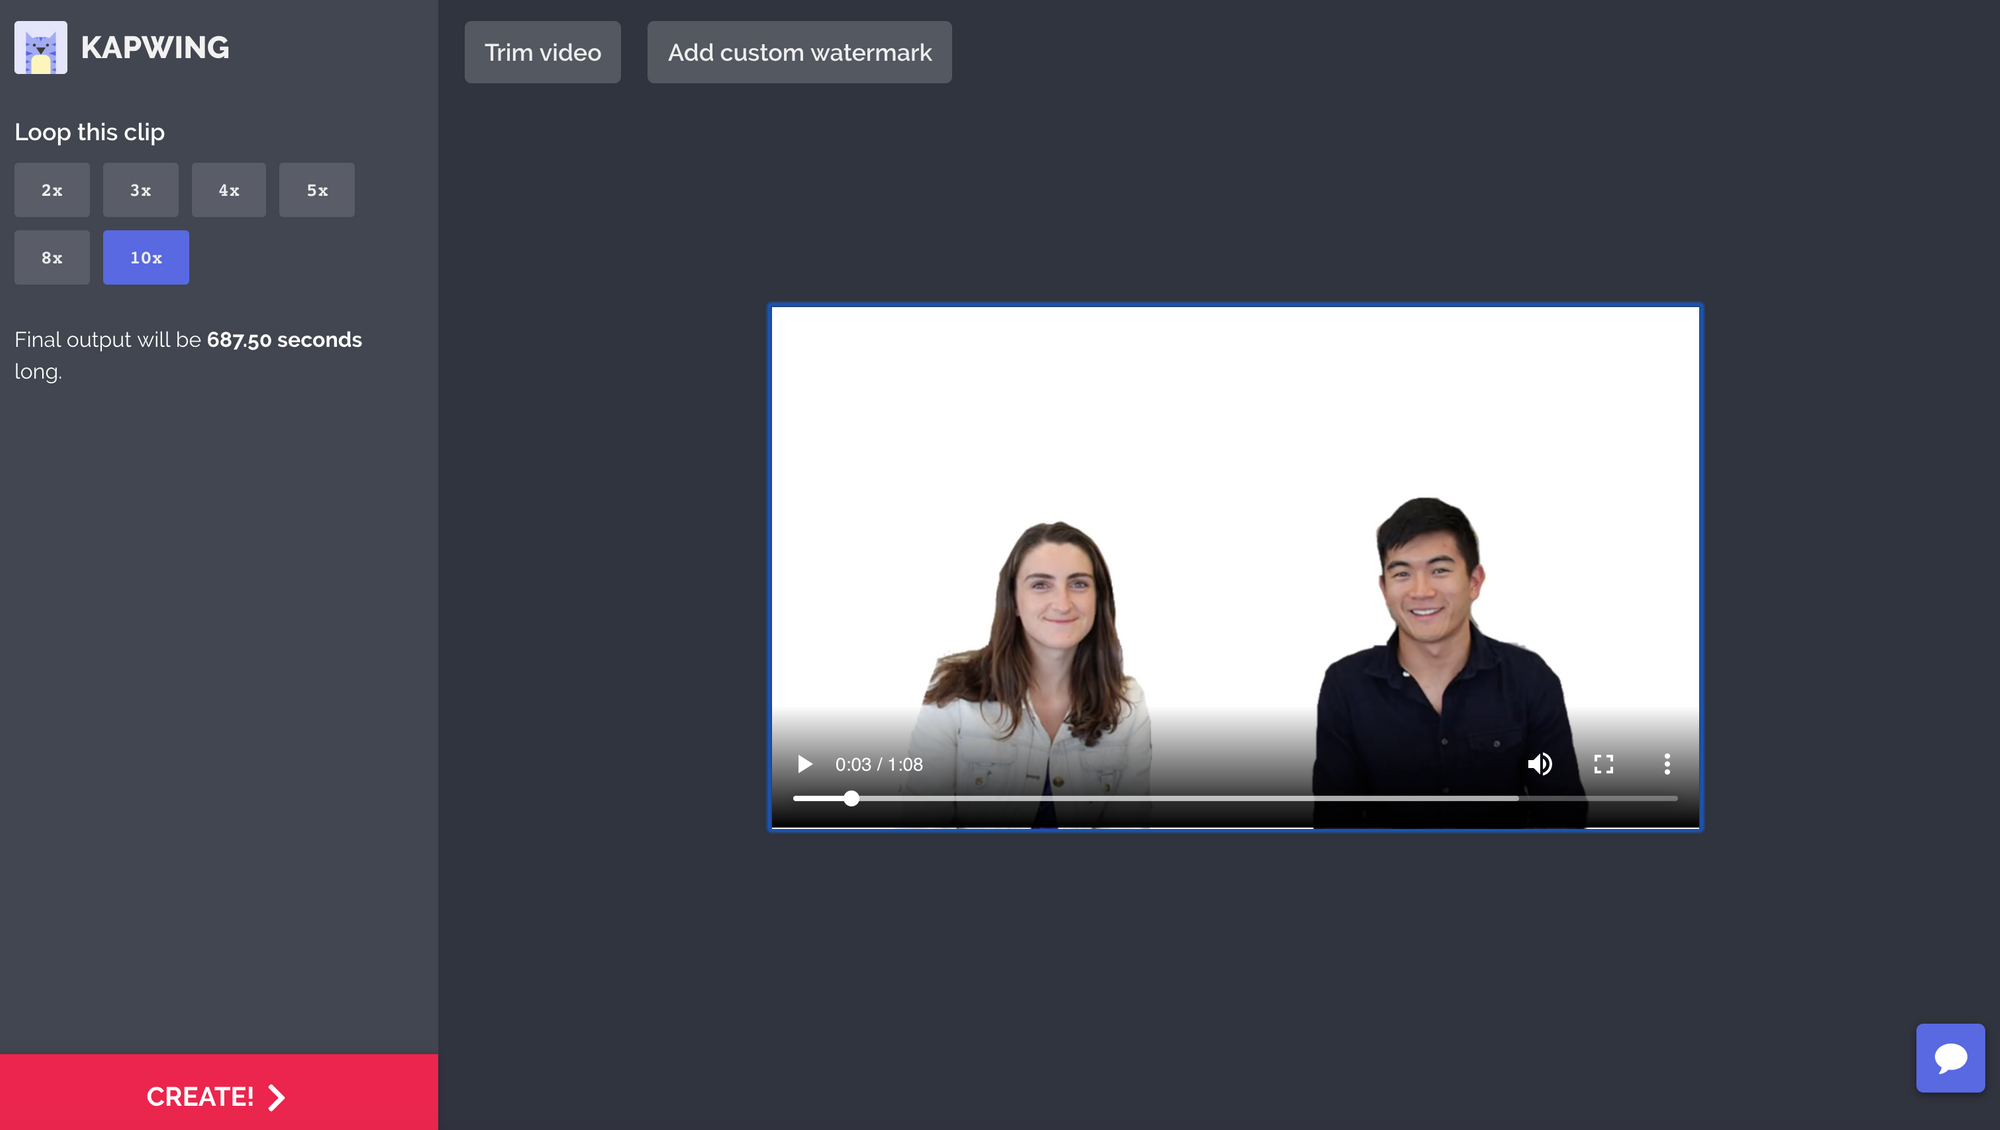 youtube video in the loop tool by Kapwing